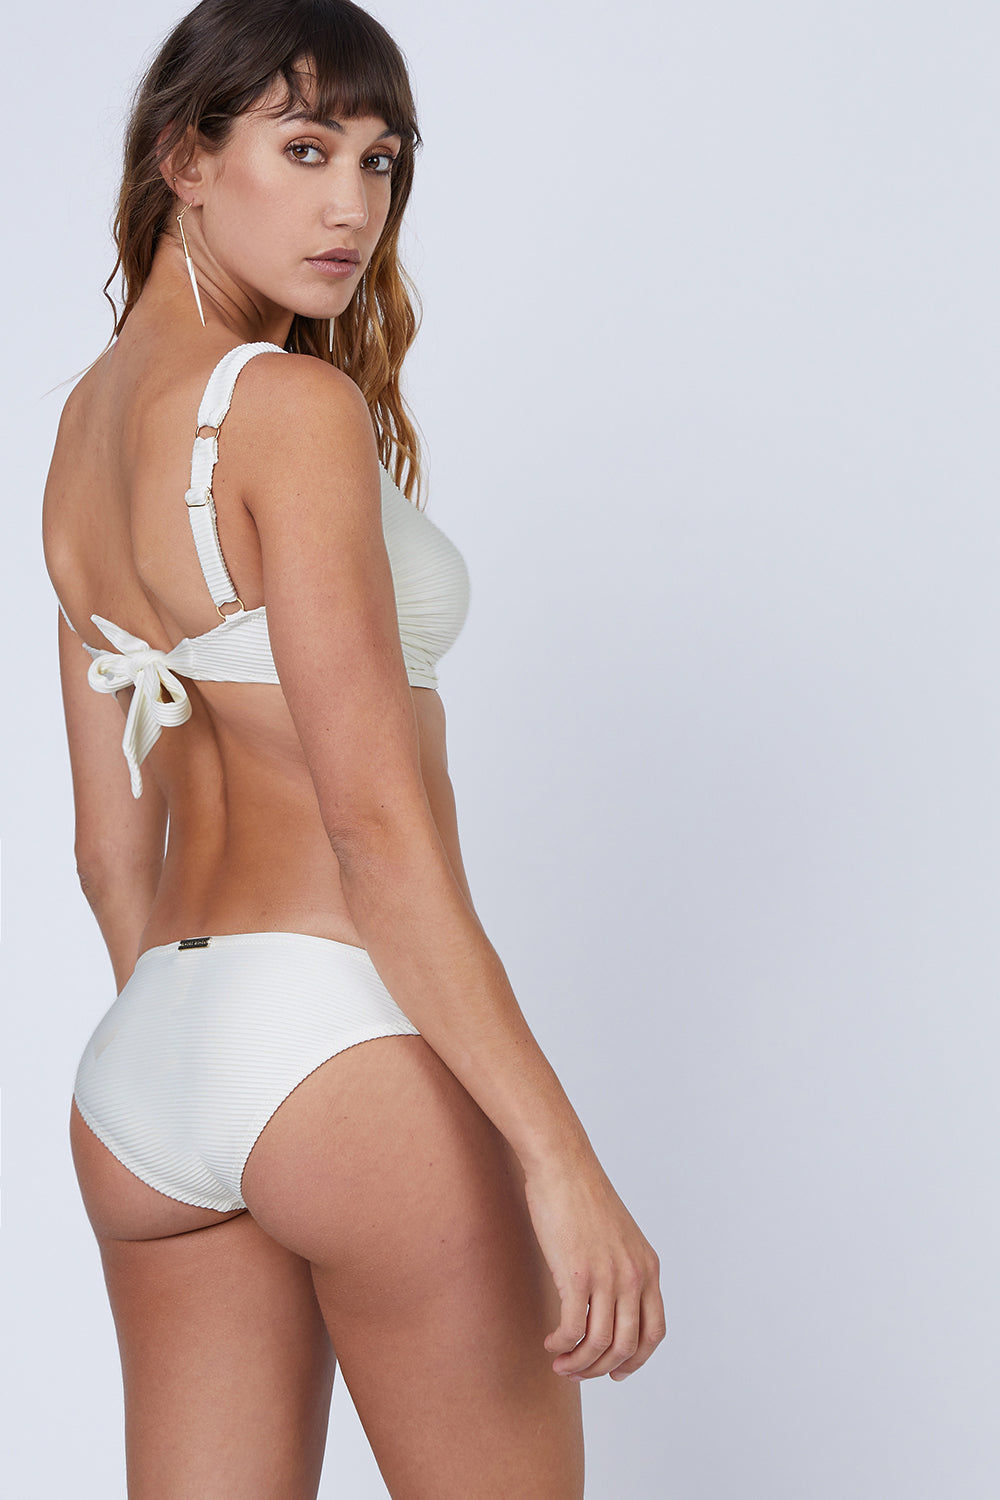 HEIDI KLEIN D-G Rectangle Ribbed  Bikini Top - Cream White Bikini Top | Cream White|  Heidi Klein D-G Rectangle Ribbed  Bikini Top - Cream White. Features:  Hardware at centre front and bone at side seam help with support and provide a luxurious finish. Underwired. The side seams and underarm coverage  provide support The bust is lined with sculpting fabric and the cradle is additionally lined in powermesh, thus making the top very supportive The bottom band ties are an adjustable tie back. The shoulder straps are adjustable in length and elasticated for comfort. Back View